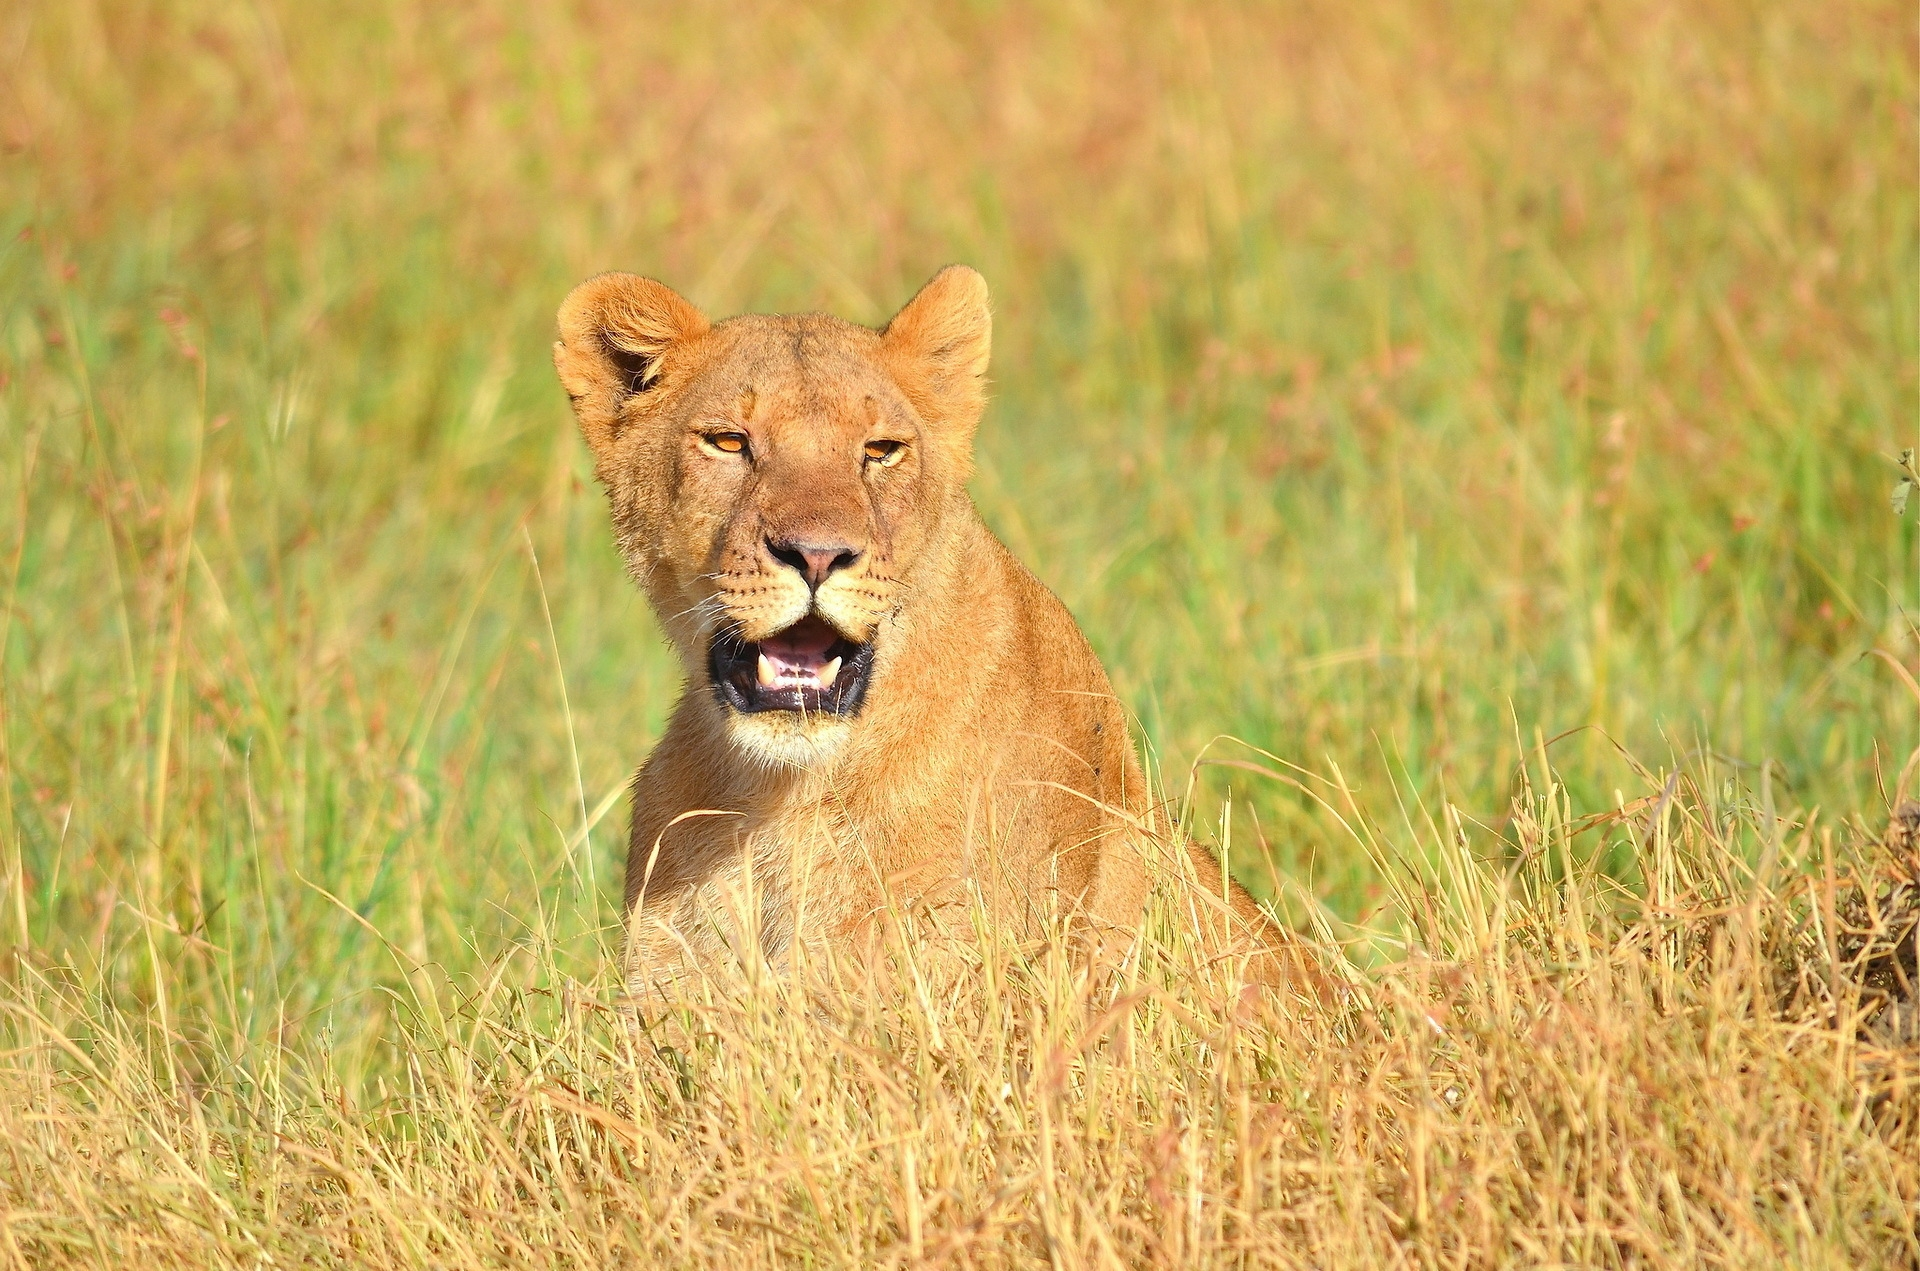 134248 download wallpaper Animals, Lion, Muzzle, Open Mouth, Grass, Predator screensavers and pictures for free